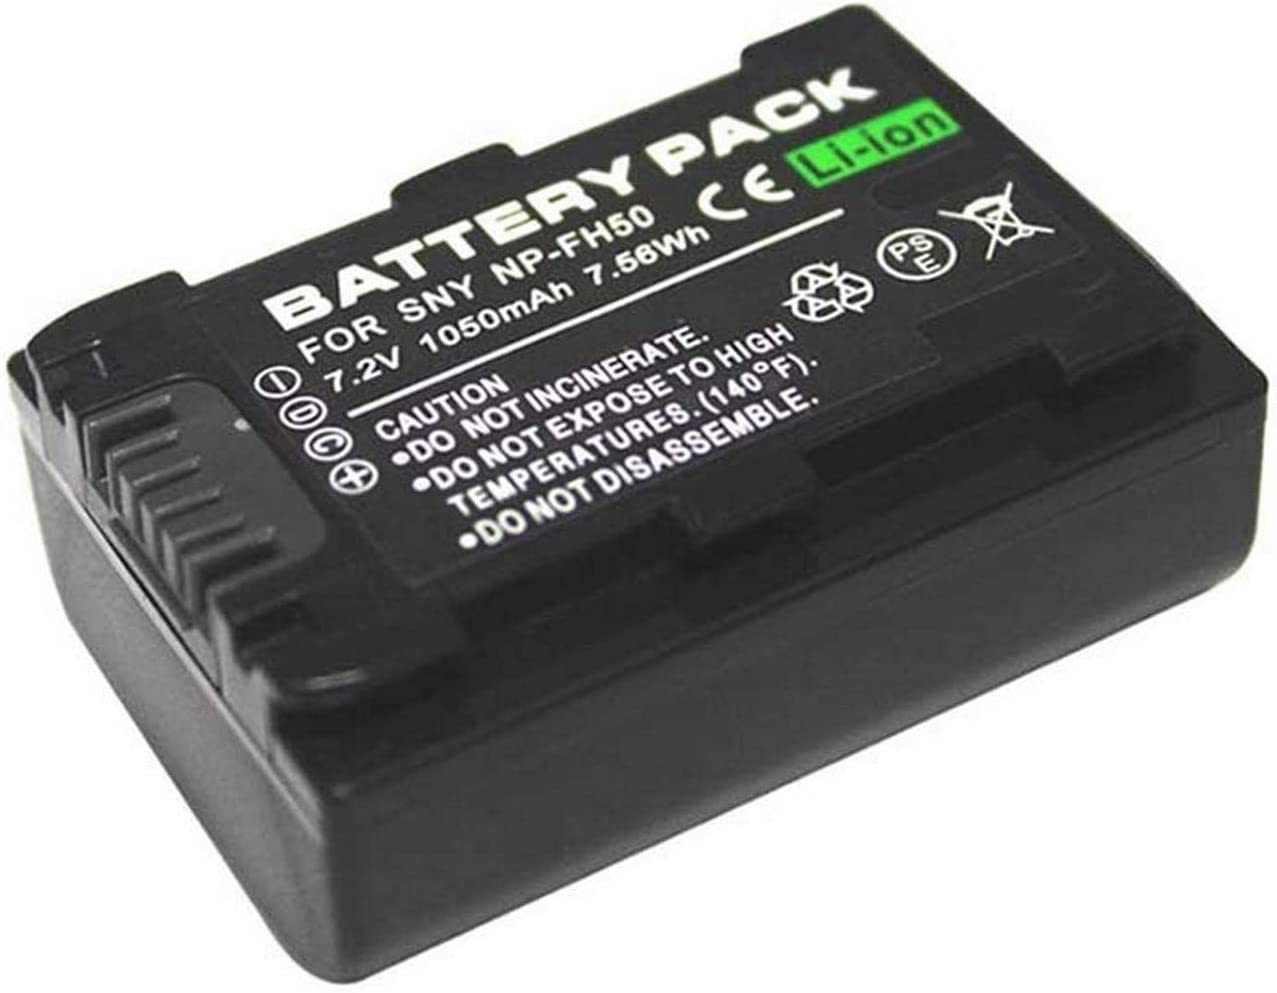 HDR-CX7EK Battery Pack for Sony HDR-CX6E HDR-CX7E HDR-CX11E HDR-CX12E Handycam Camcorder